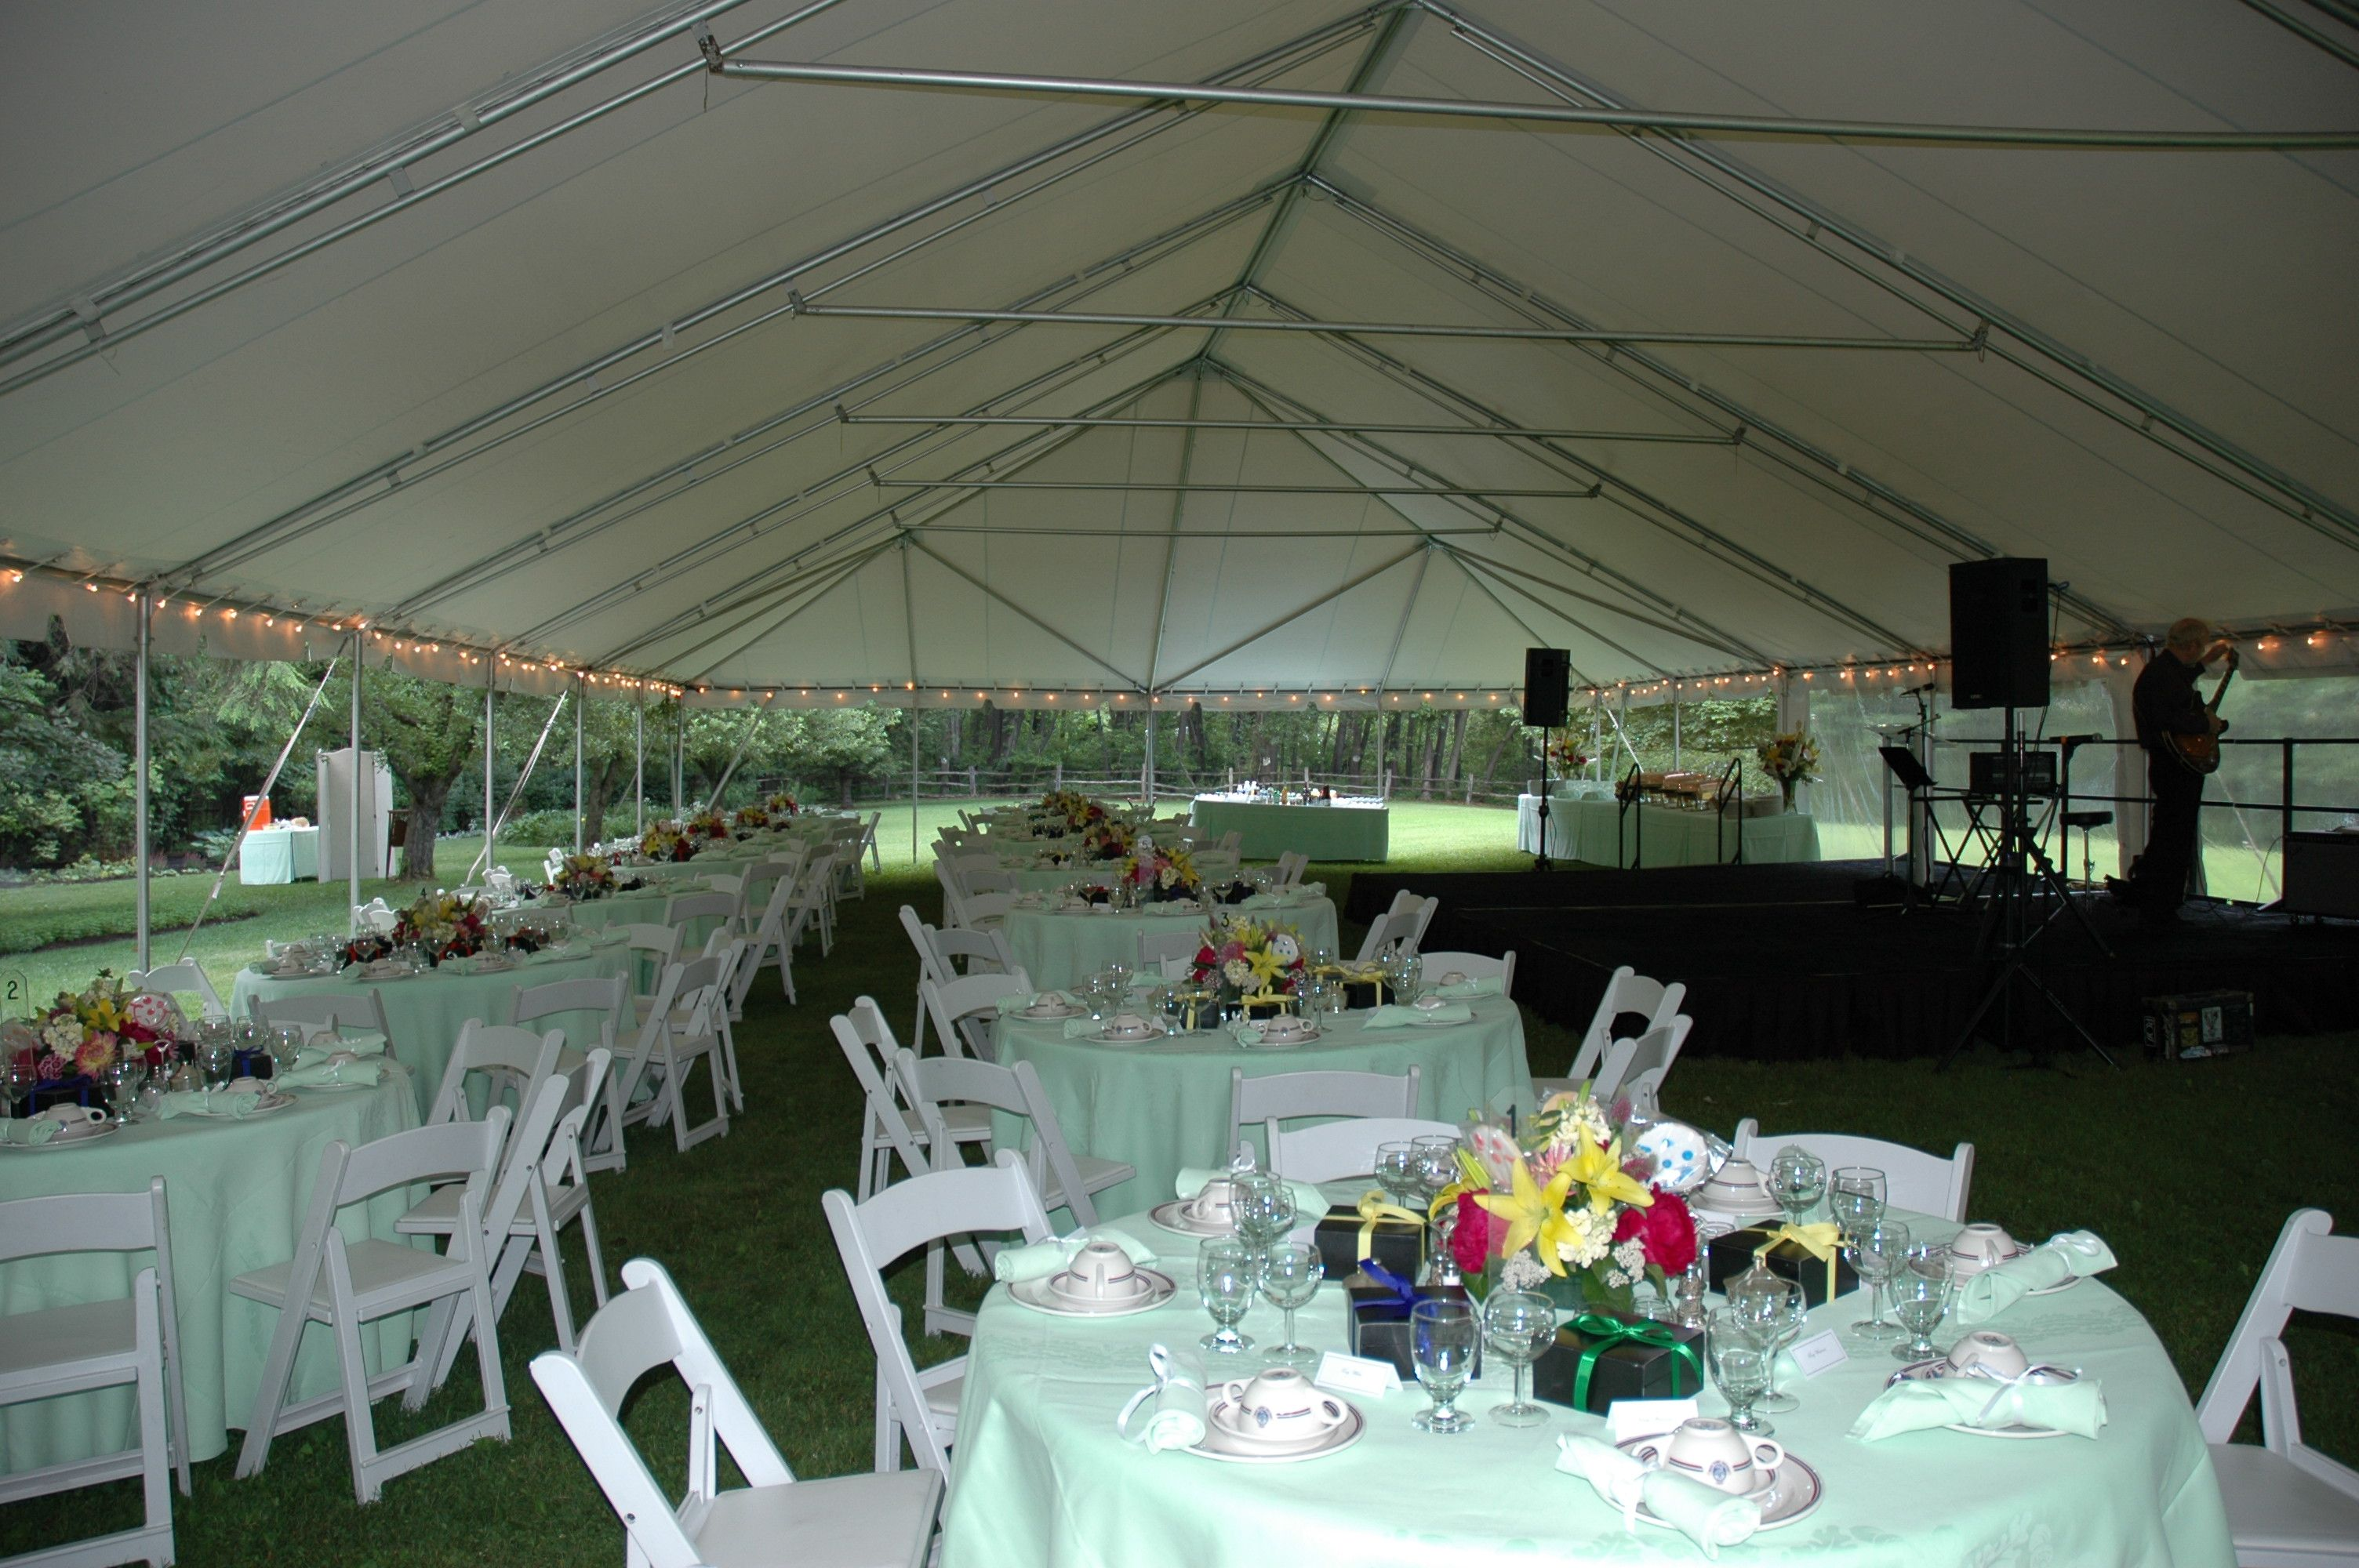 Pin By Partysavvy On Company Party Time Tent Rentals Wedding Rentals Company Party